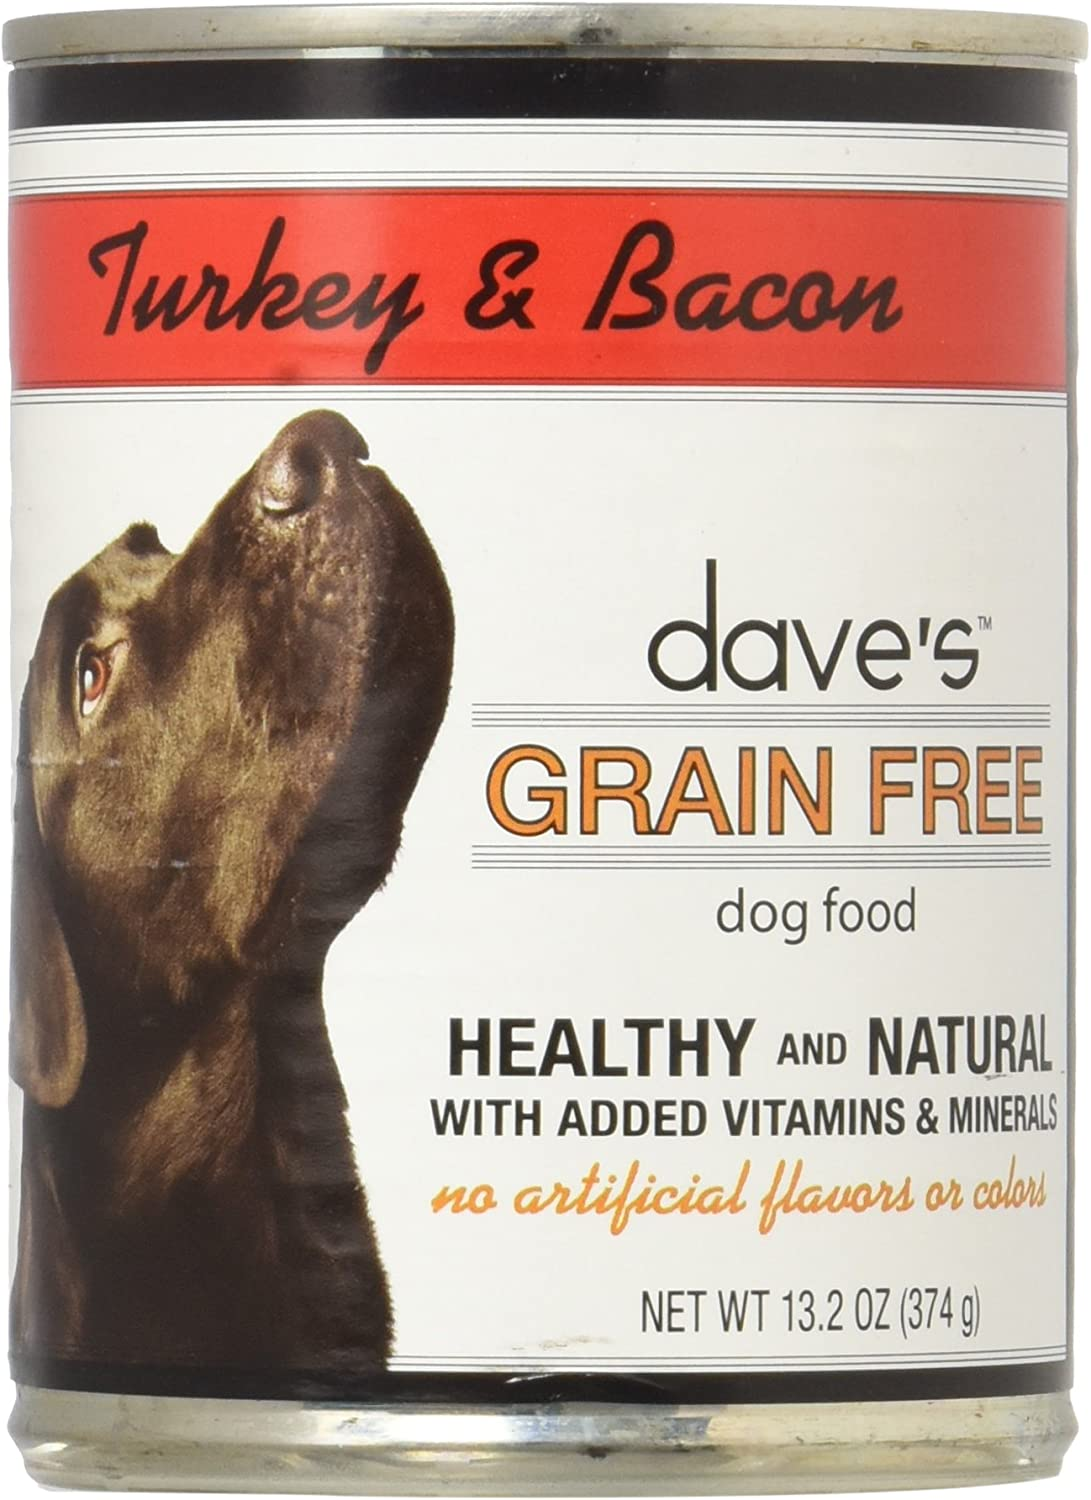 Dave'S Grain Free, Turkey & Bacon For Dogs, 13.2 Ounce (Pack of 12)